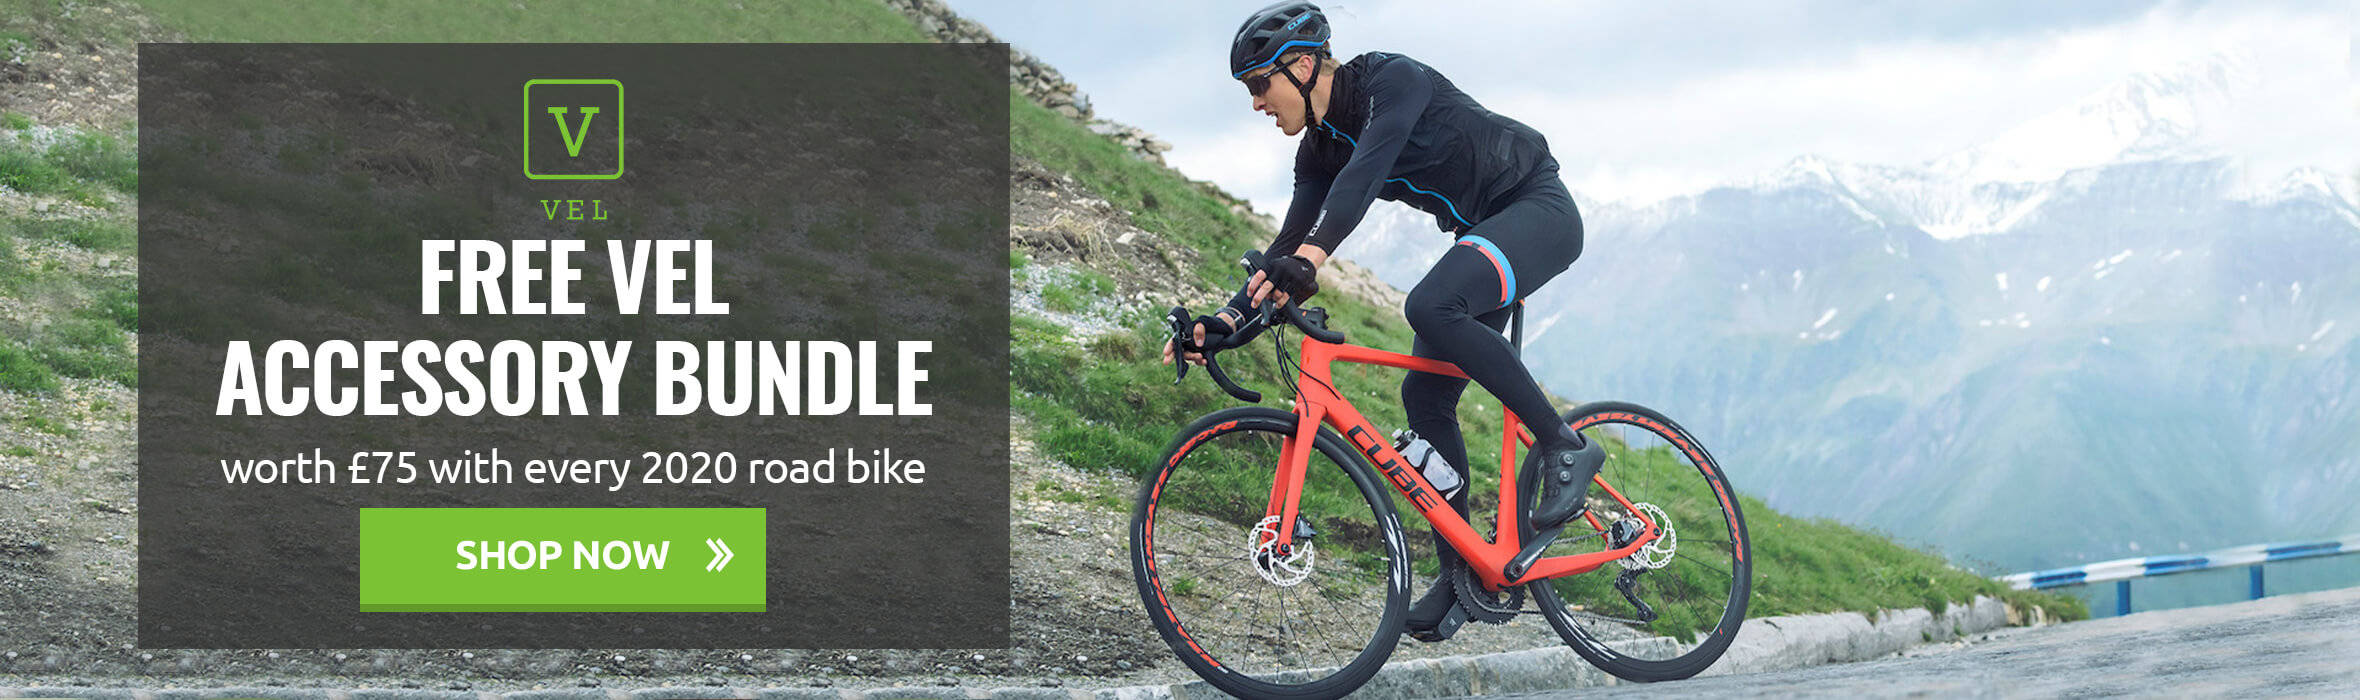 Free VEL Accessory Bundle Worth £75 With Every 2020 Road Bike